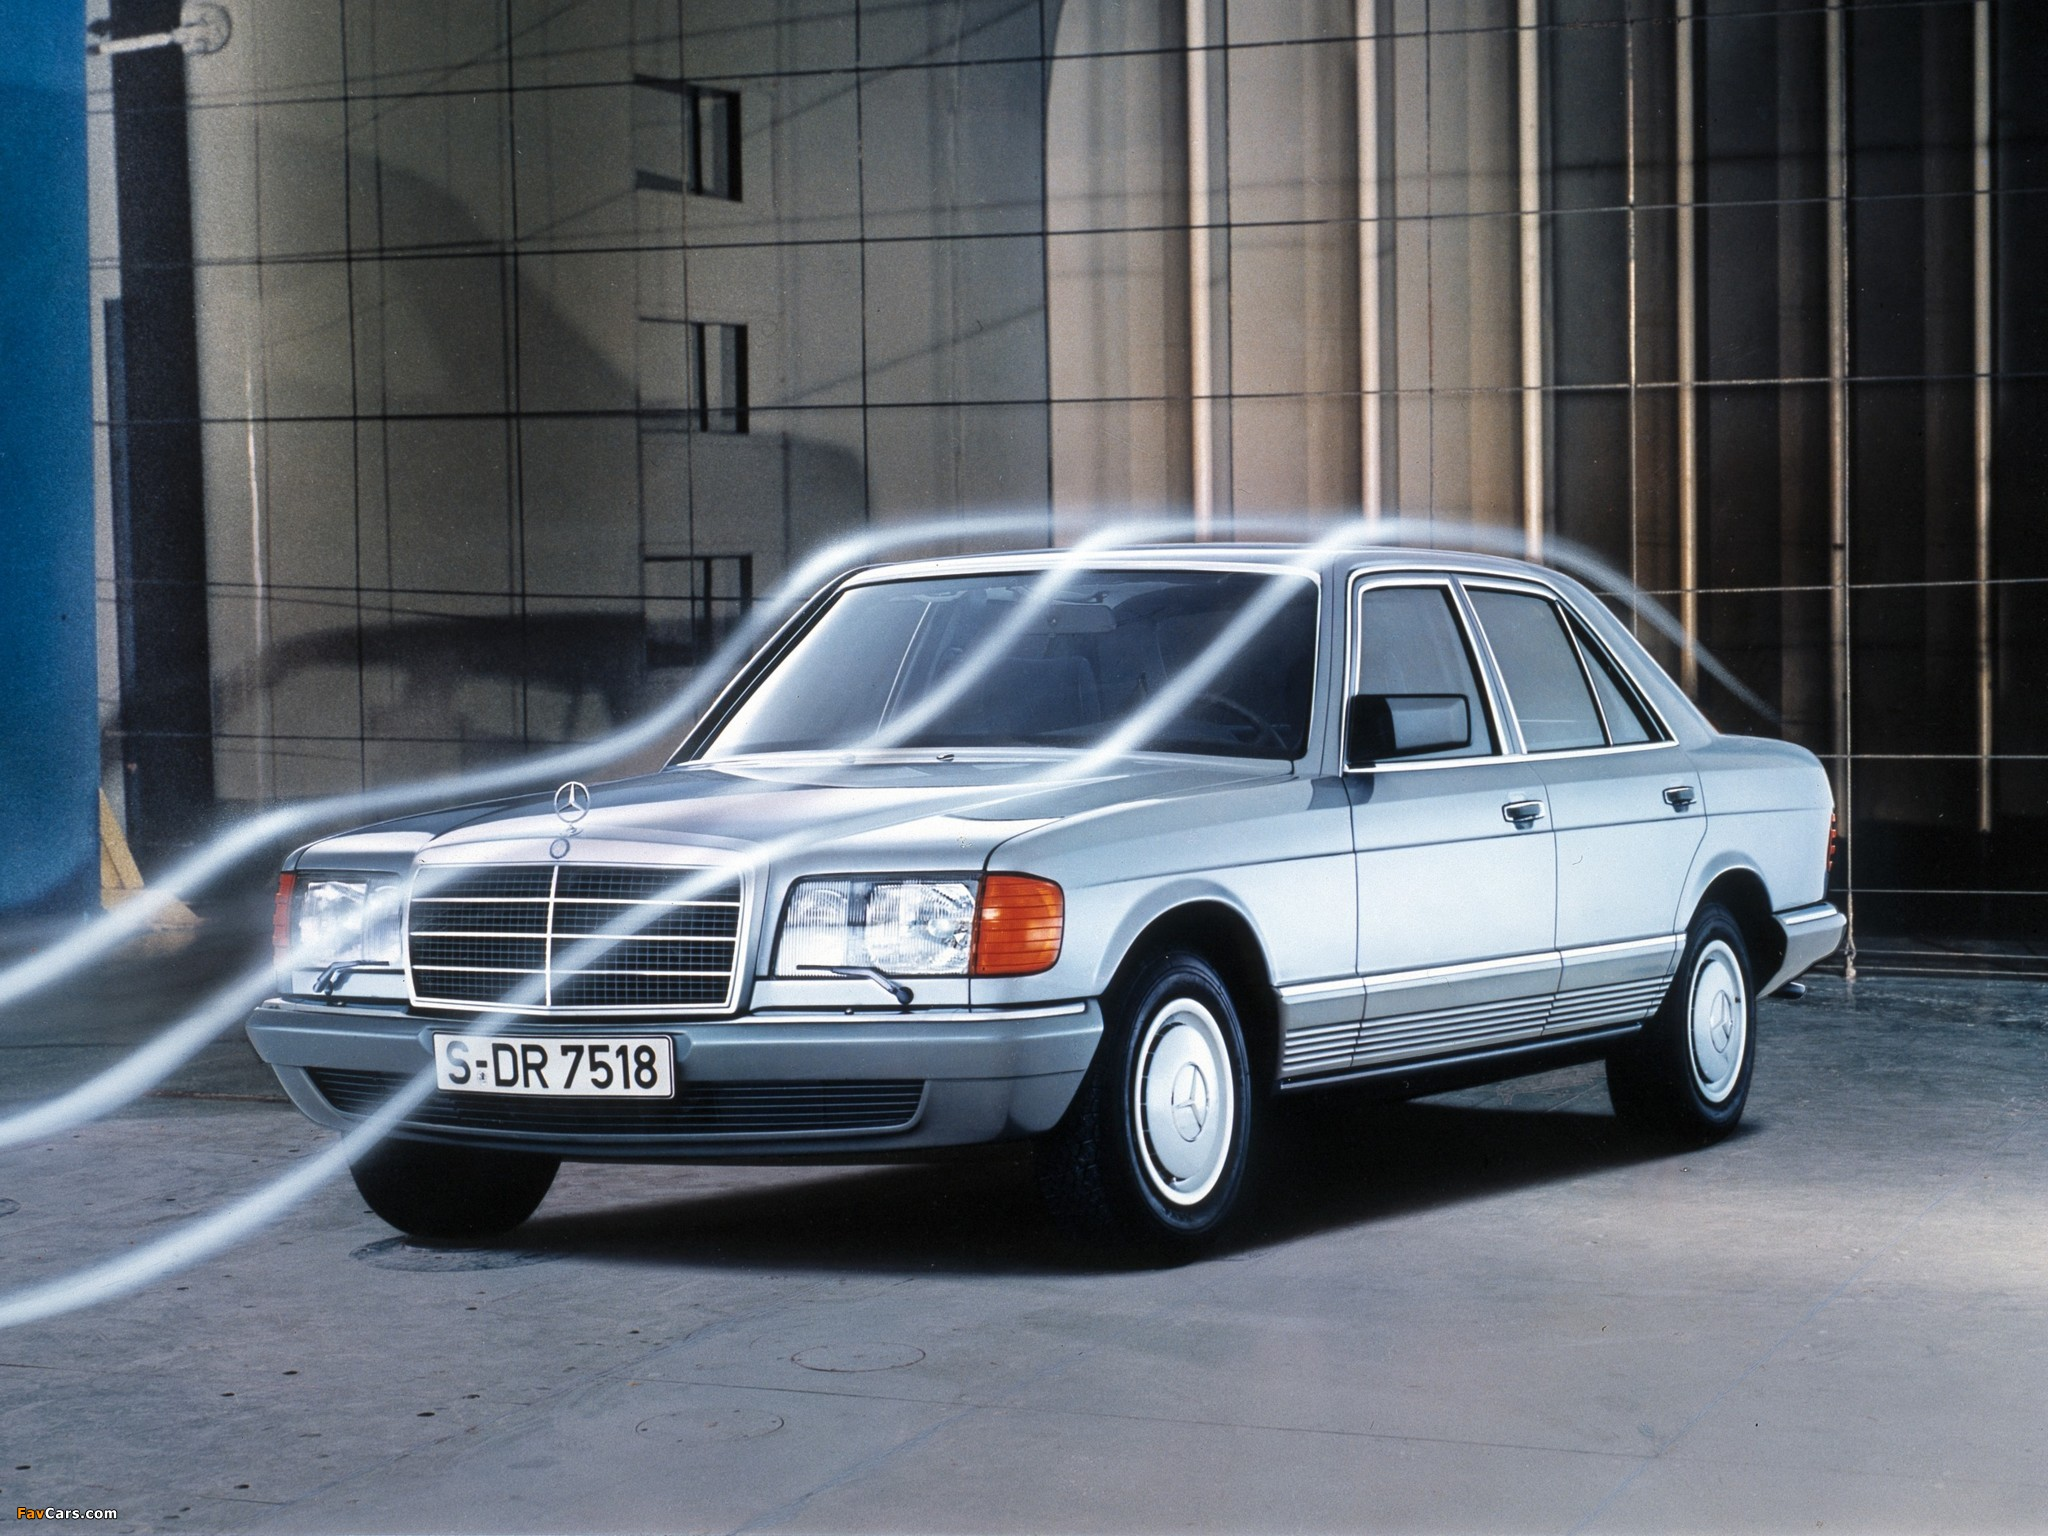 211816 Mercedes W123 Tuning Silnika also Watch as well Brabus Mercedes Benz 560 Sel 6 0 W126 Pictures 269038 likewise Mercedes 300 Se W 126 1164385 in addition LZ8316Z82K665A51. on benz w126